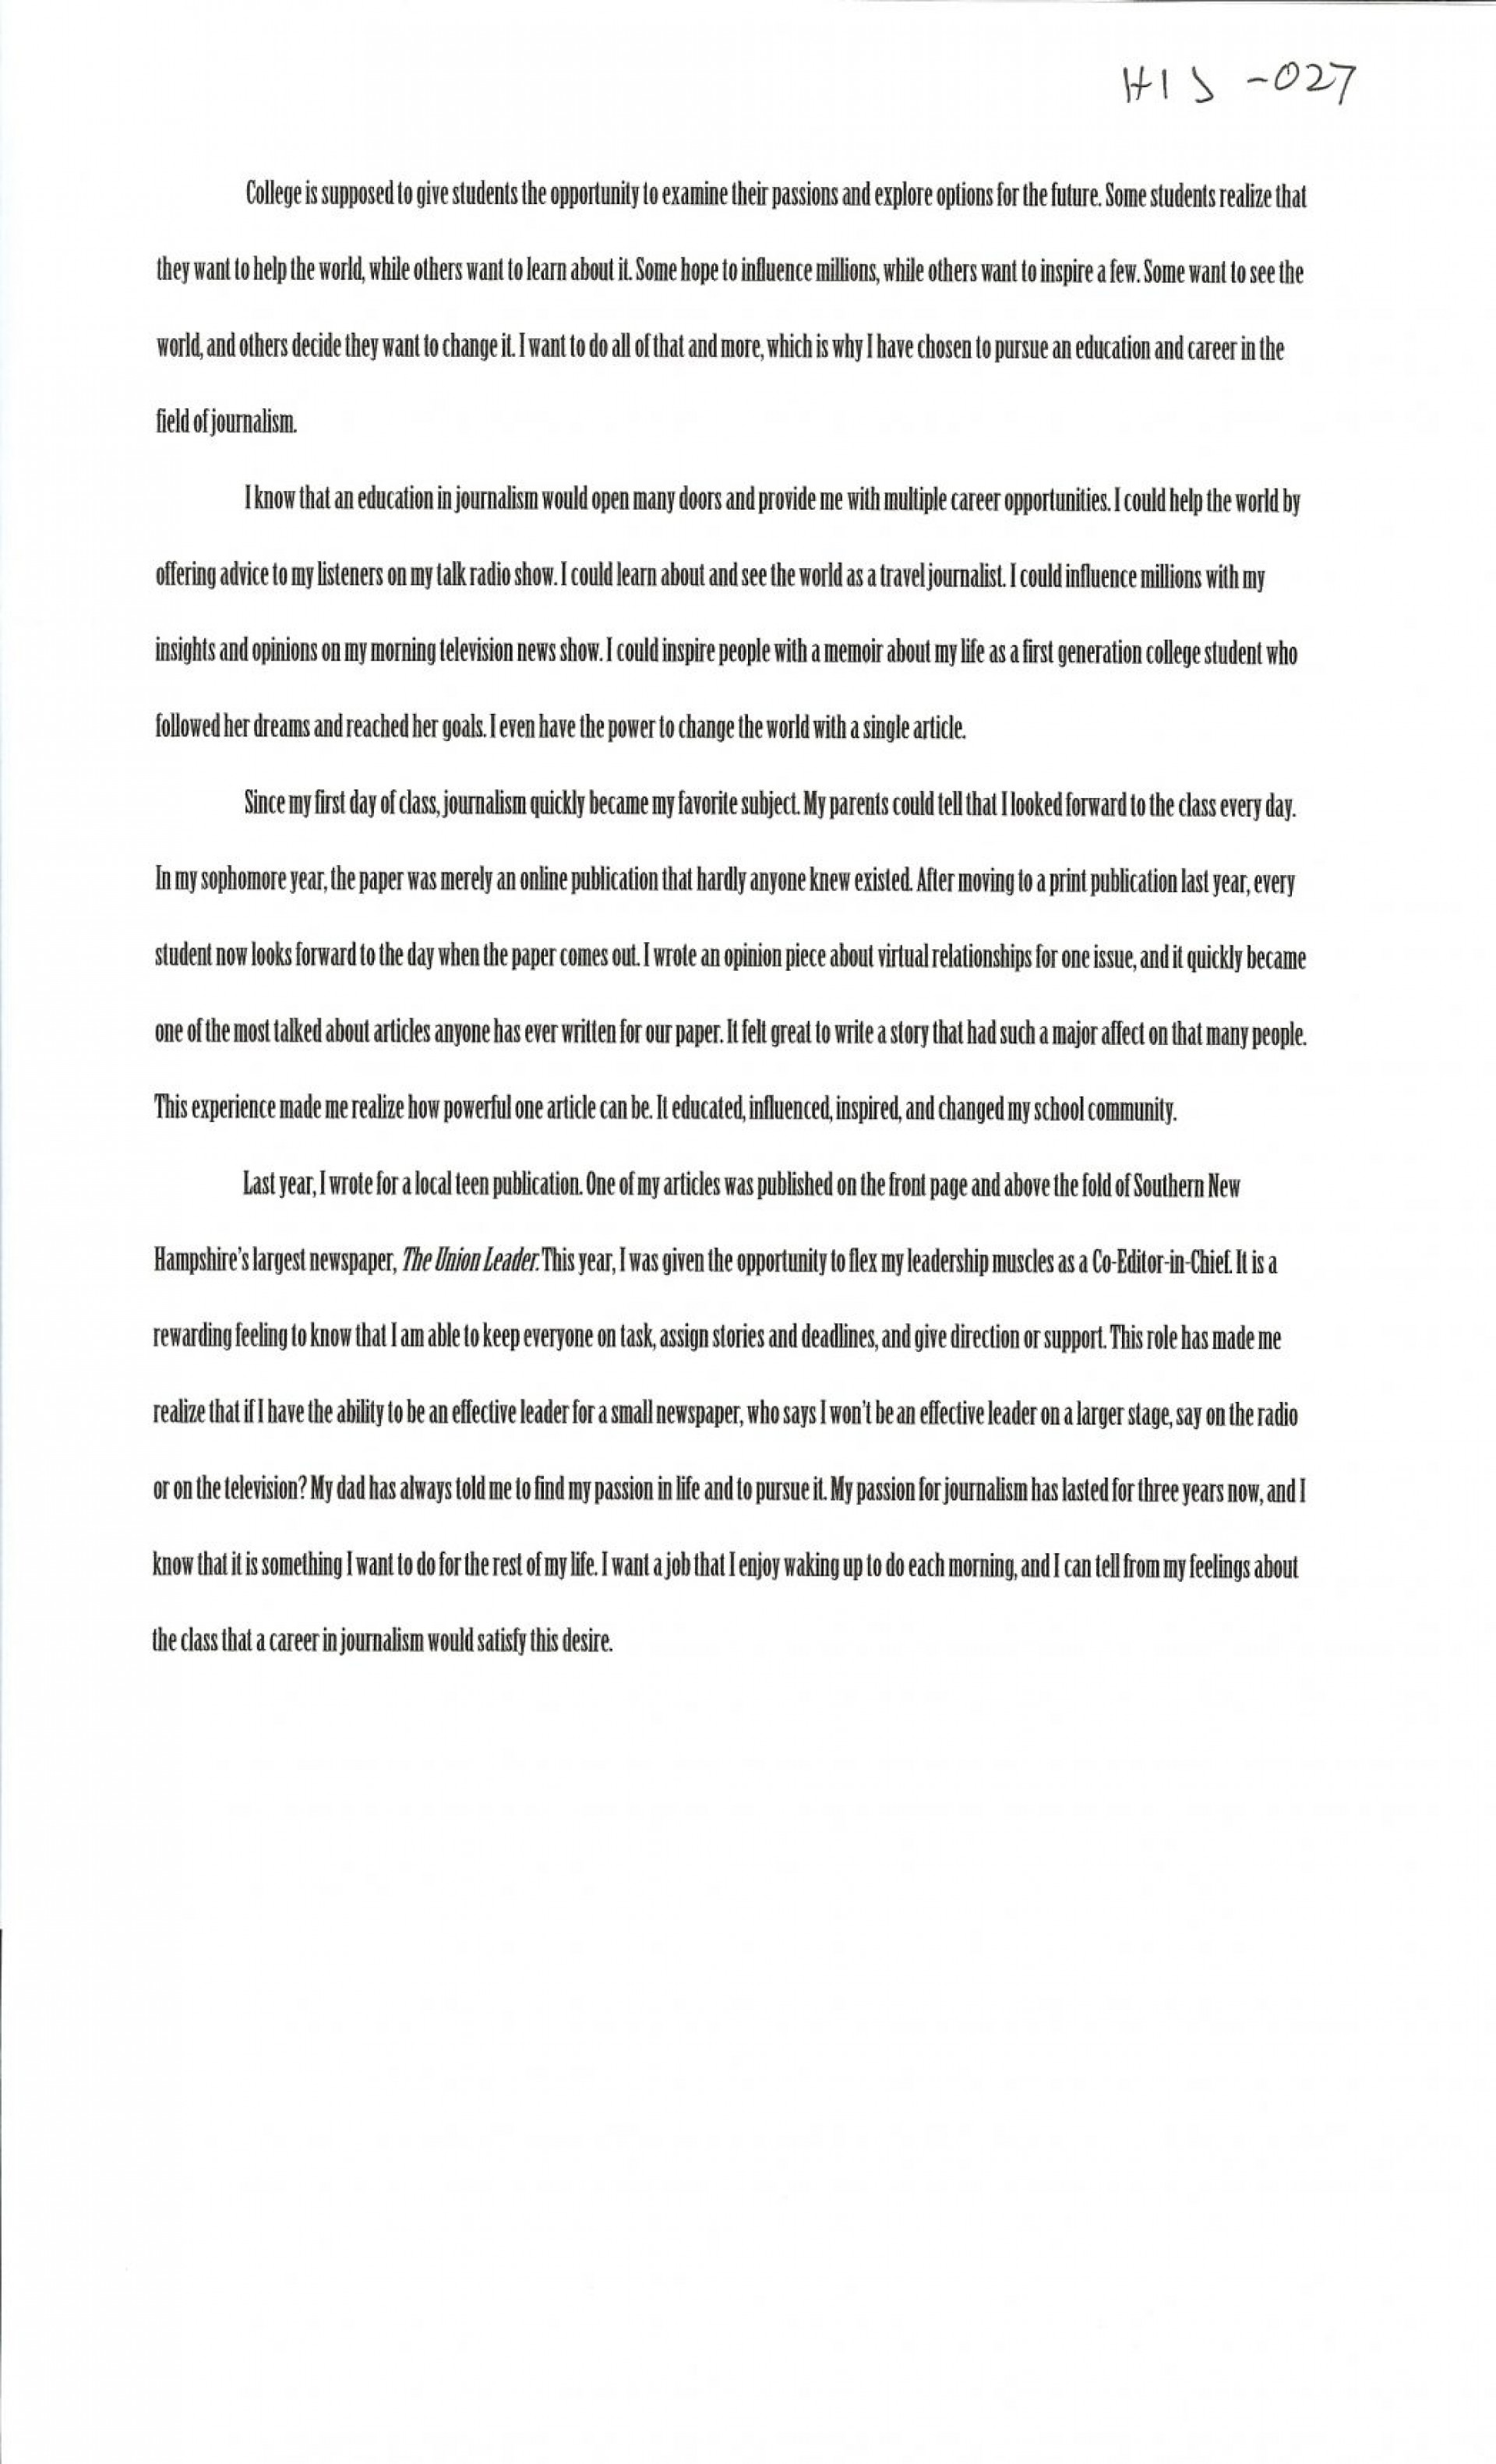 020 Interview Essayss Cover Page For College Admission Essay Samples Free Alexa Serrecchia 1048x1726 Formidable Examples Sample 1920